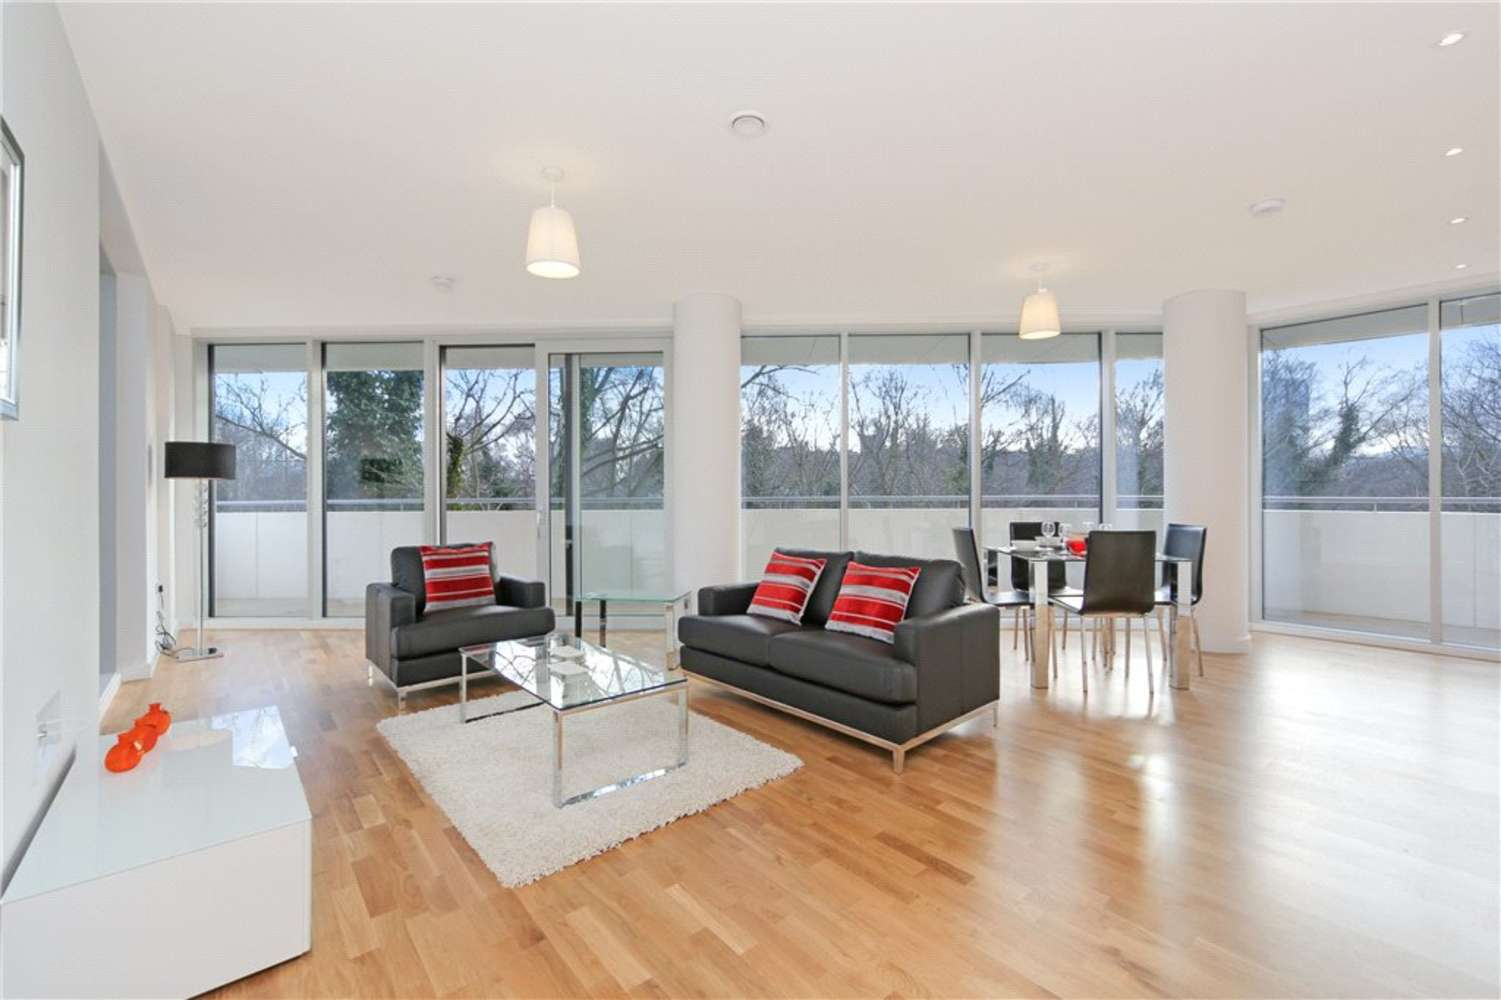 Apartment Chiswick, W4 - Edmunds House Colonial Drive W4 - 02